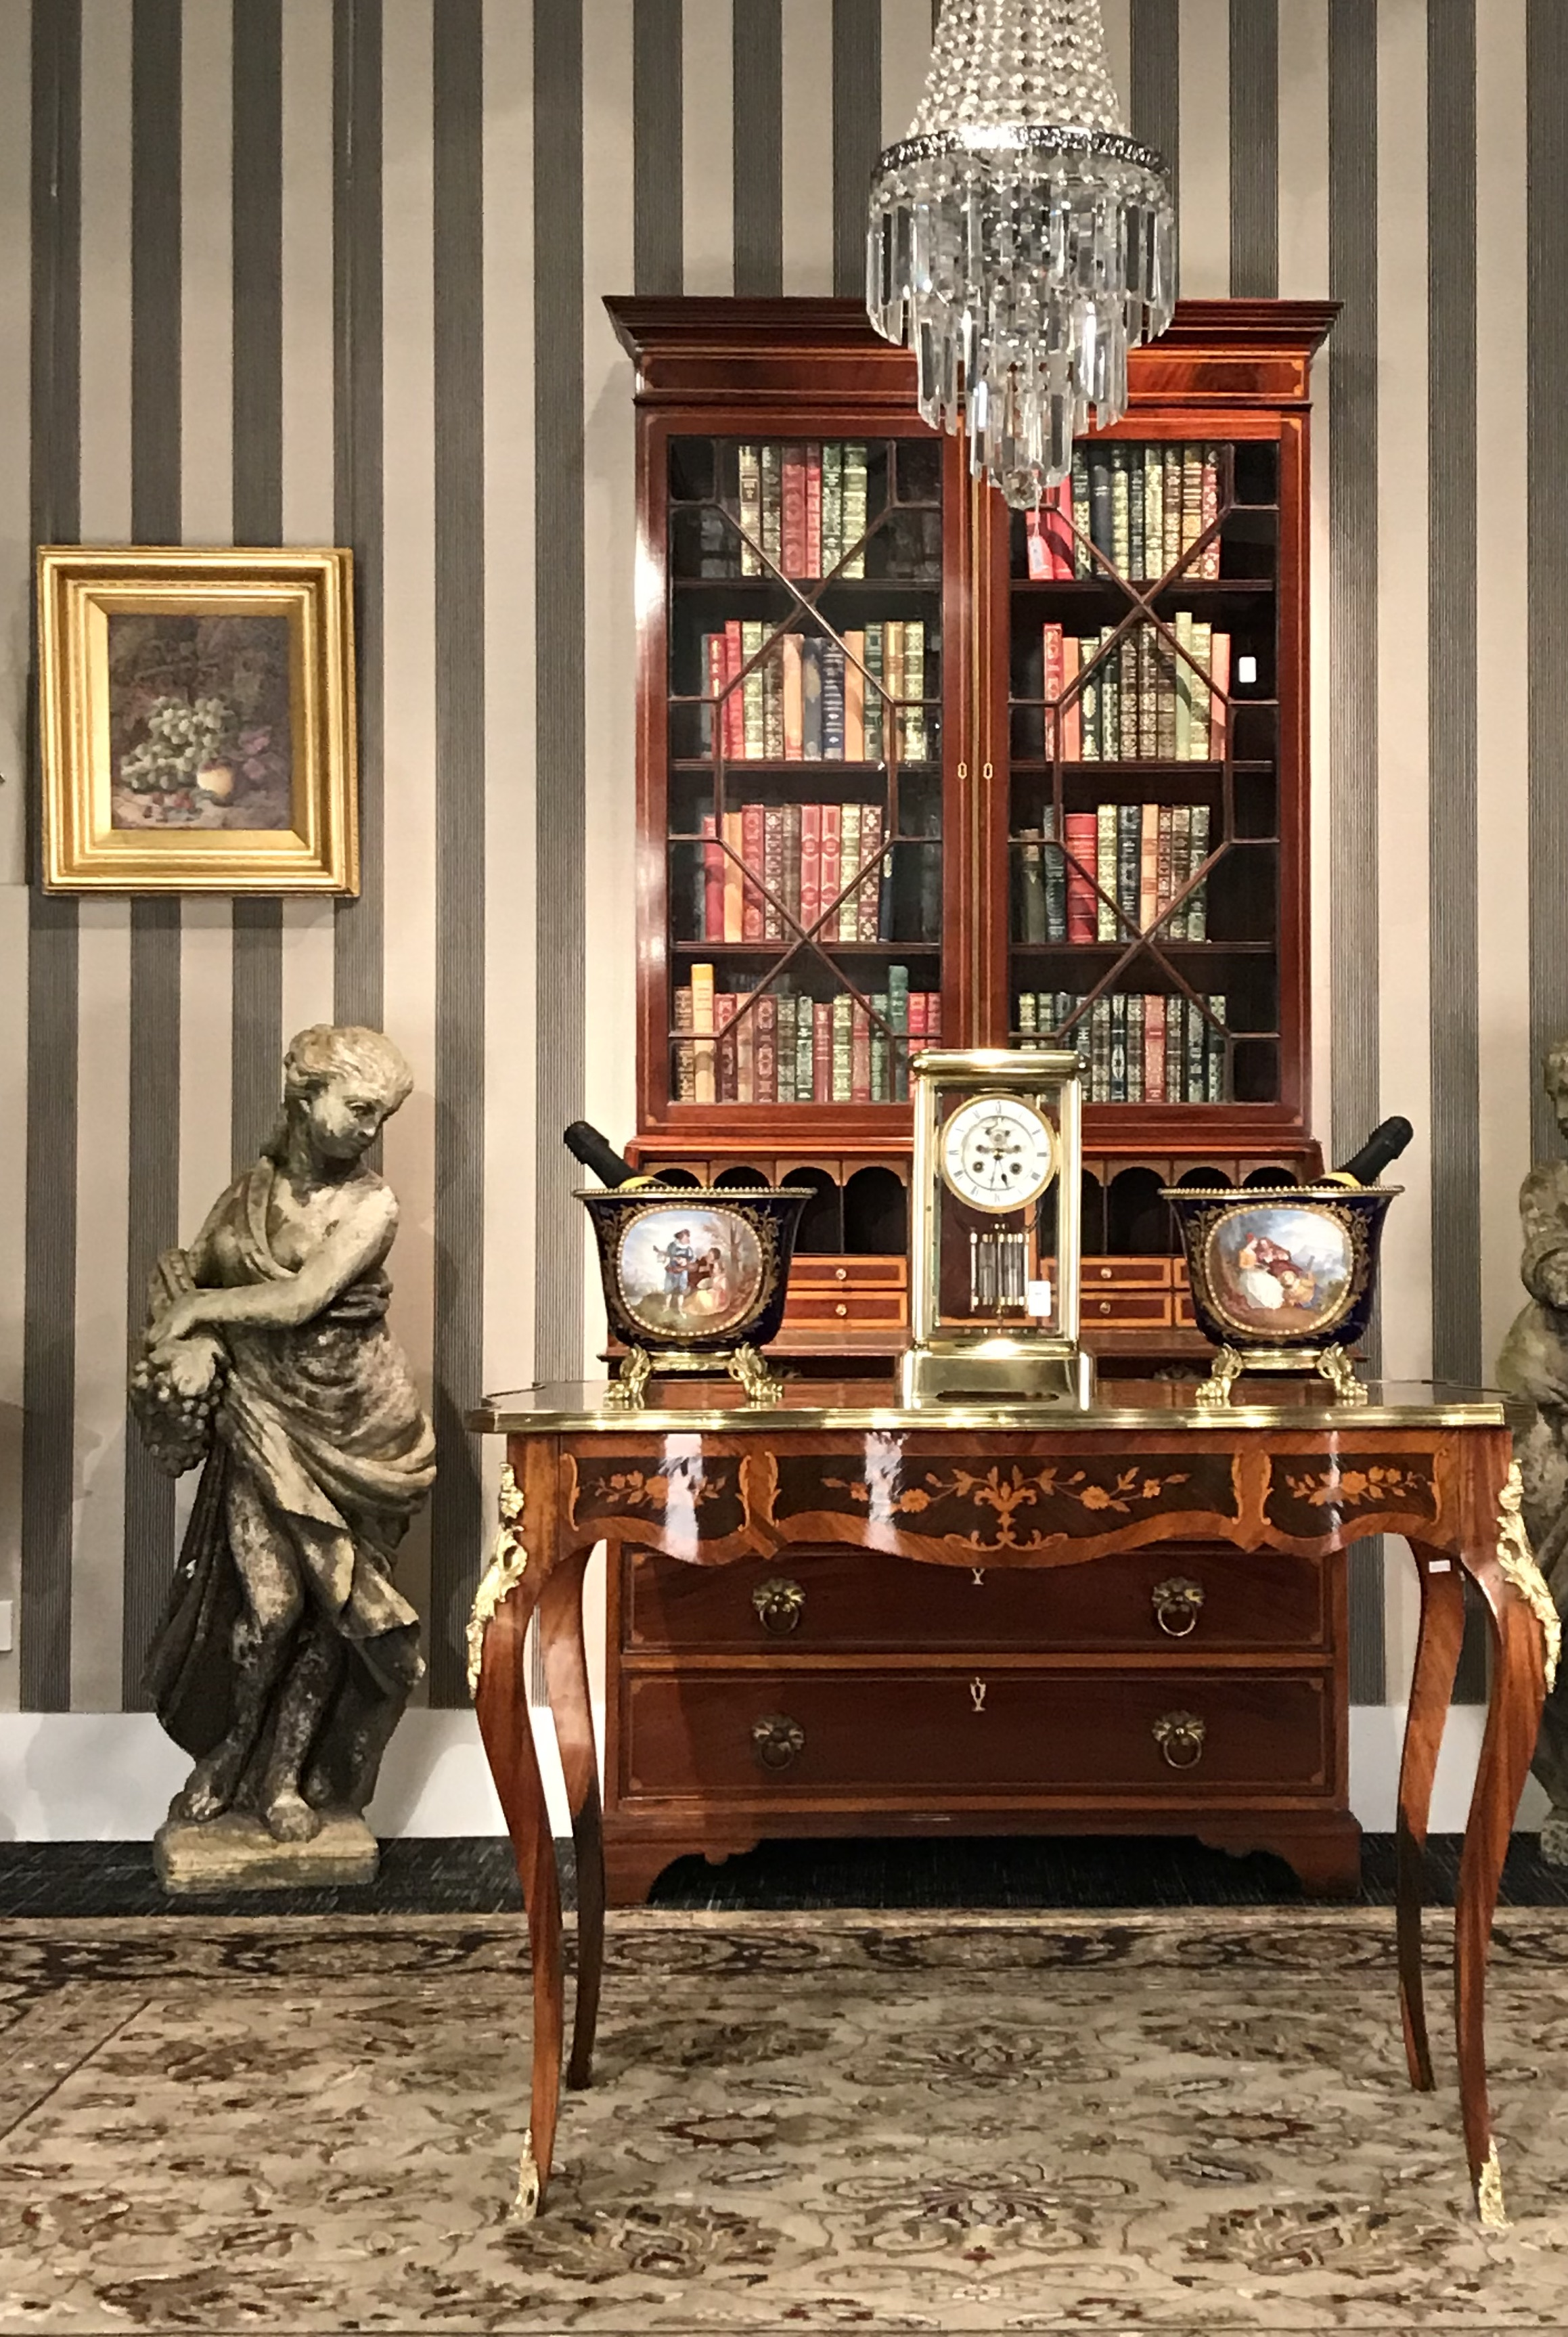 Unique Items From A Discerning Private Collection